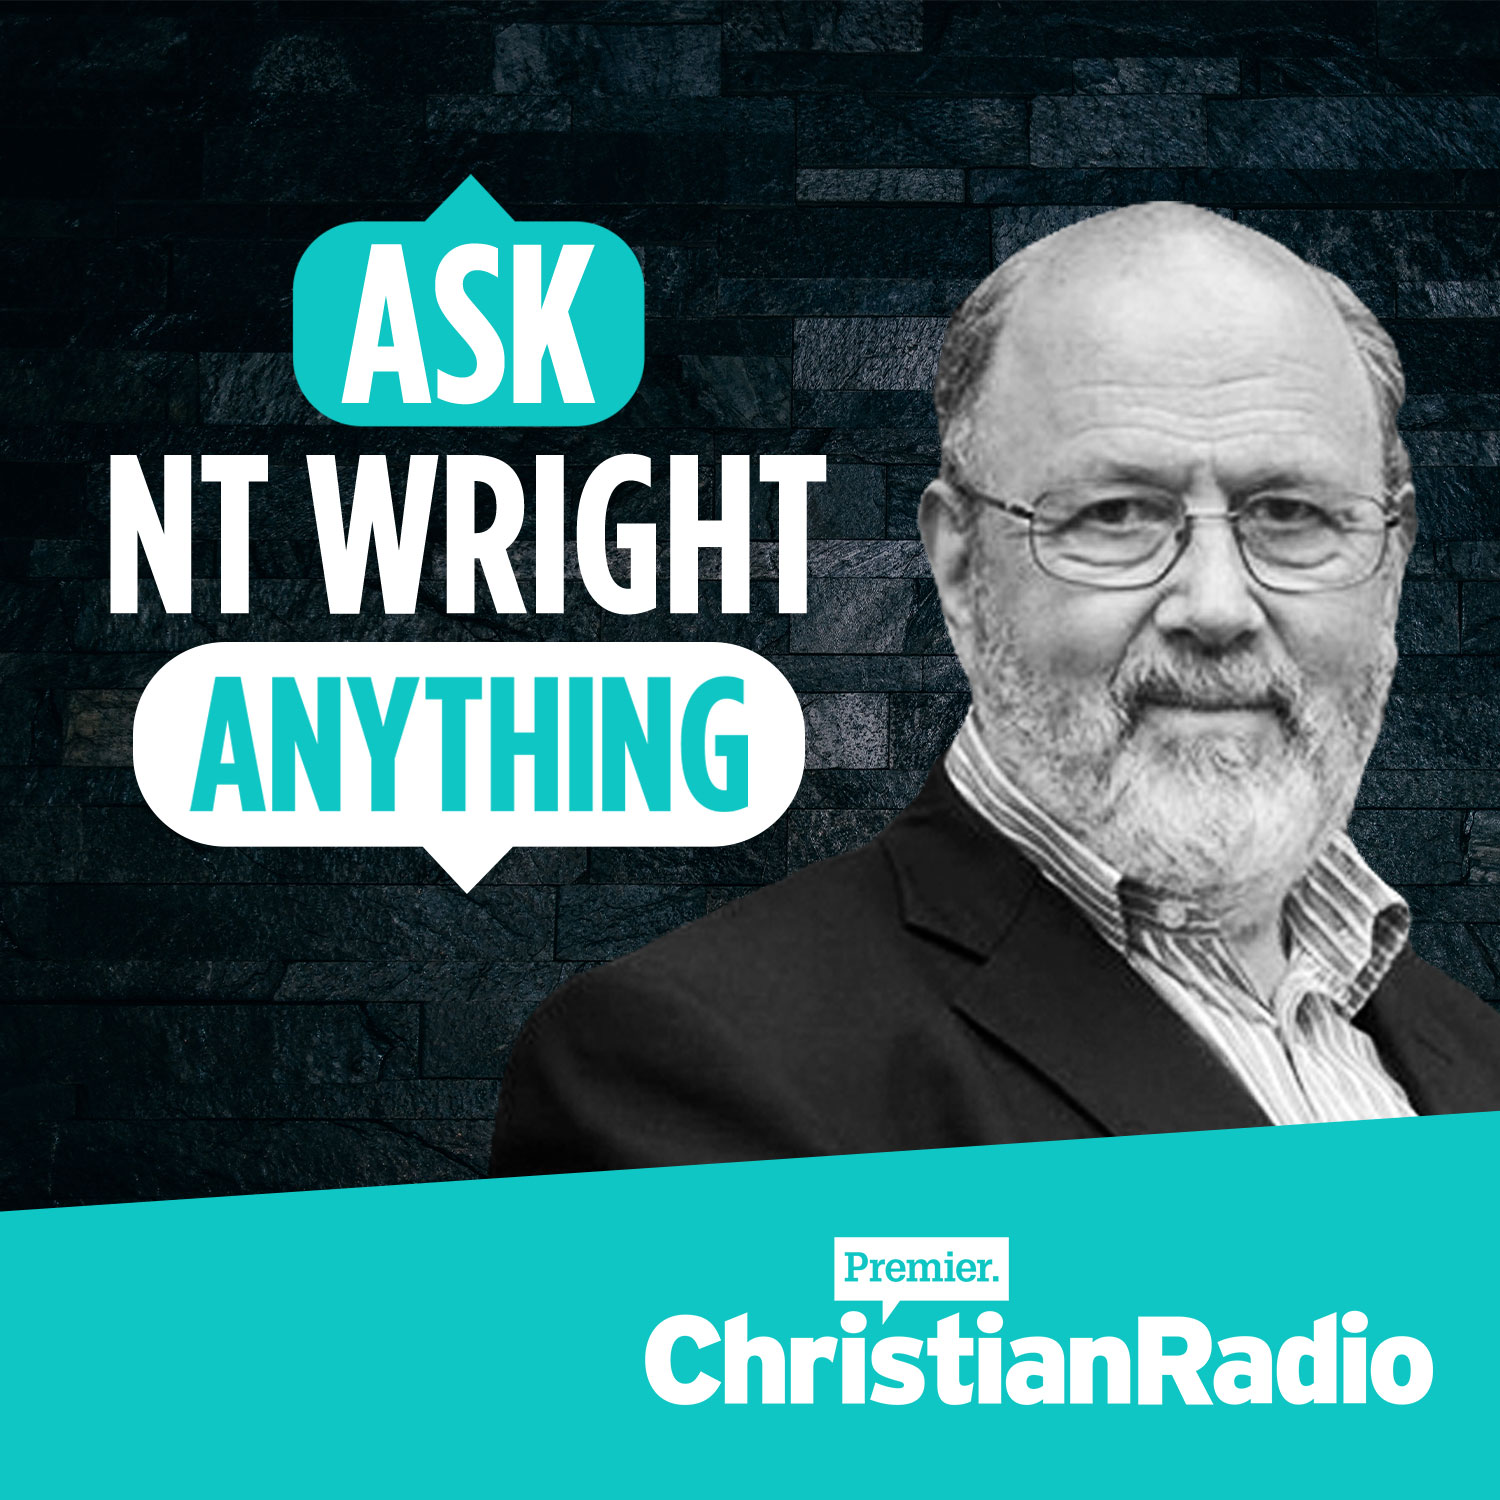 The Ask NT Wright Anything Podcast